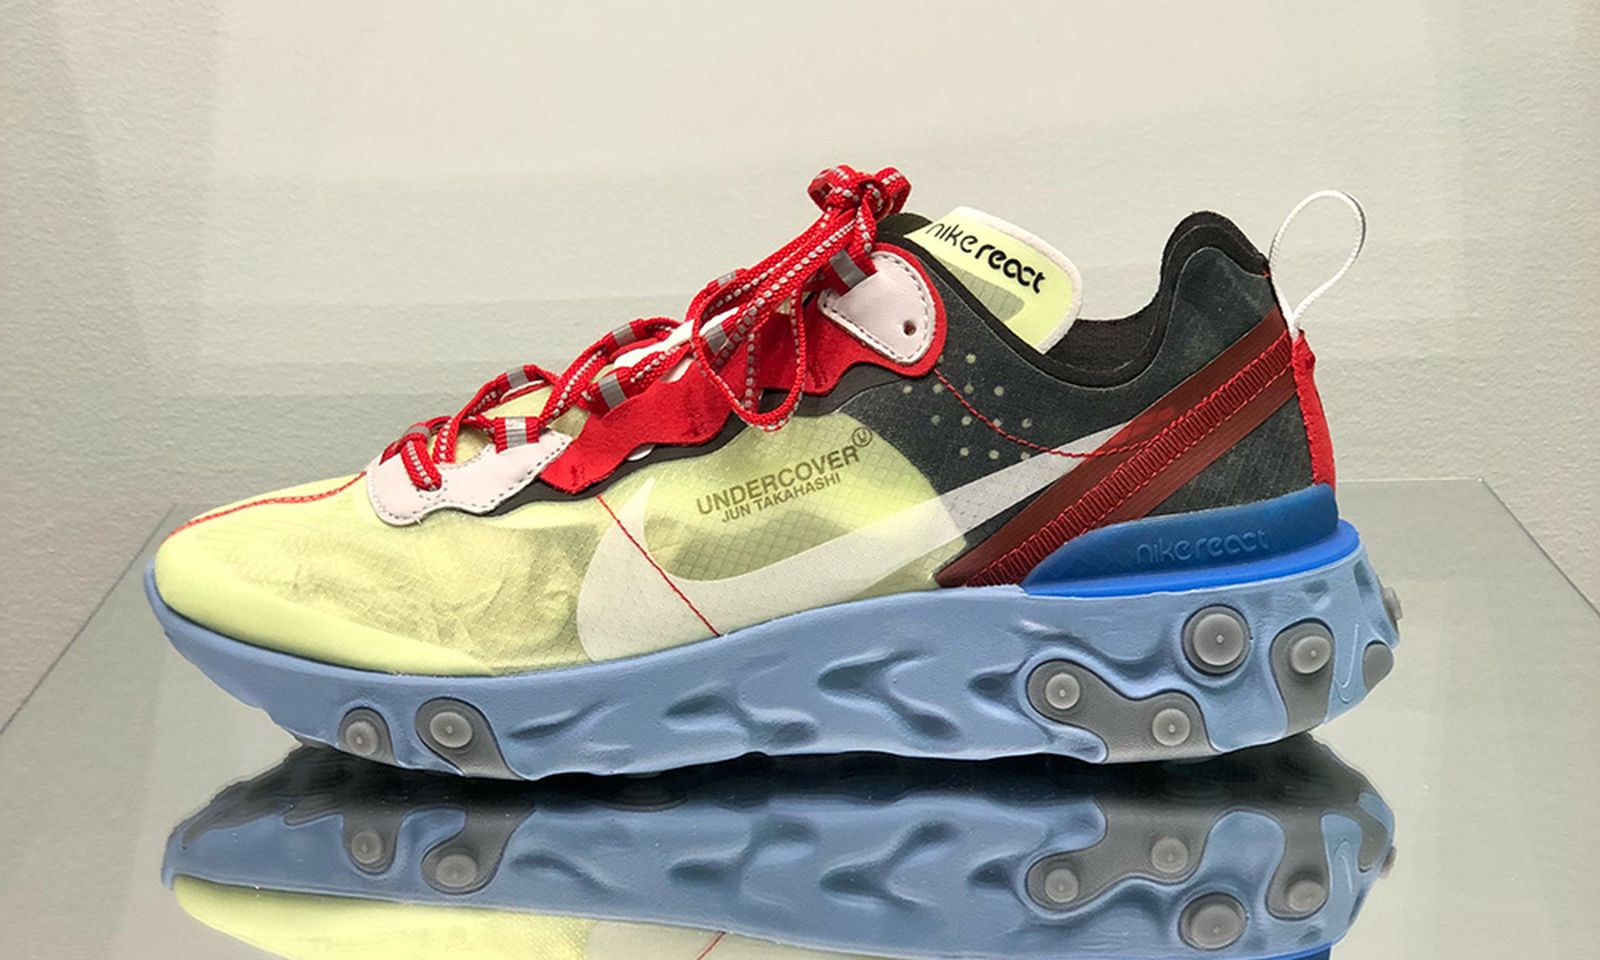 undercover nike react element 87 release date price feature